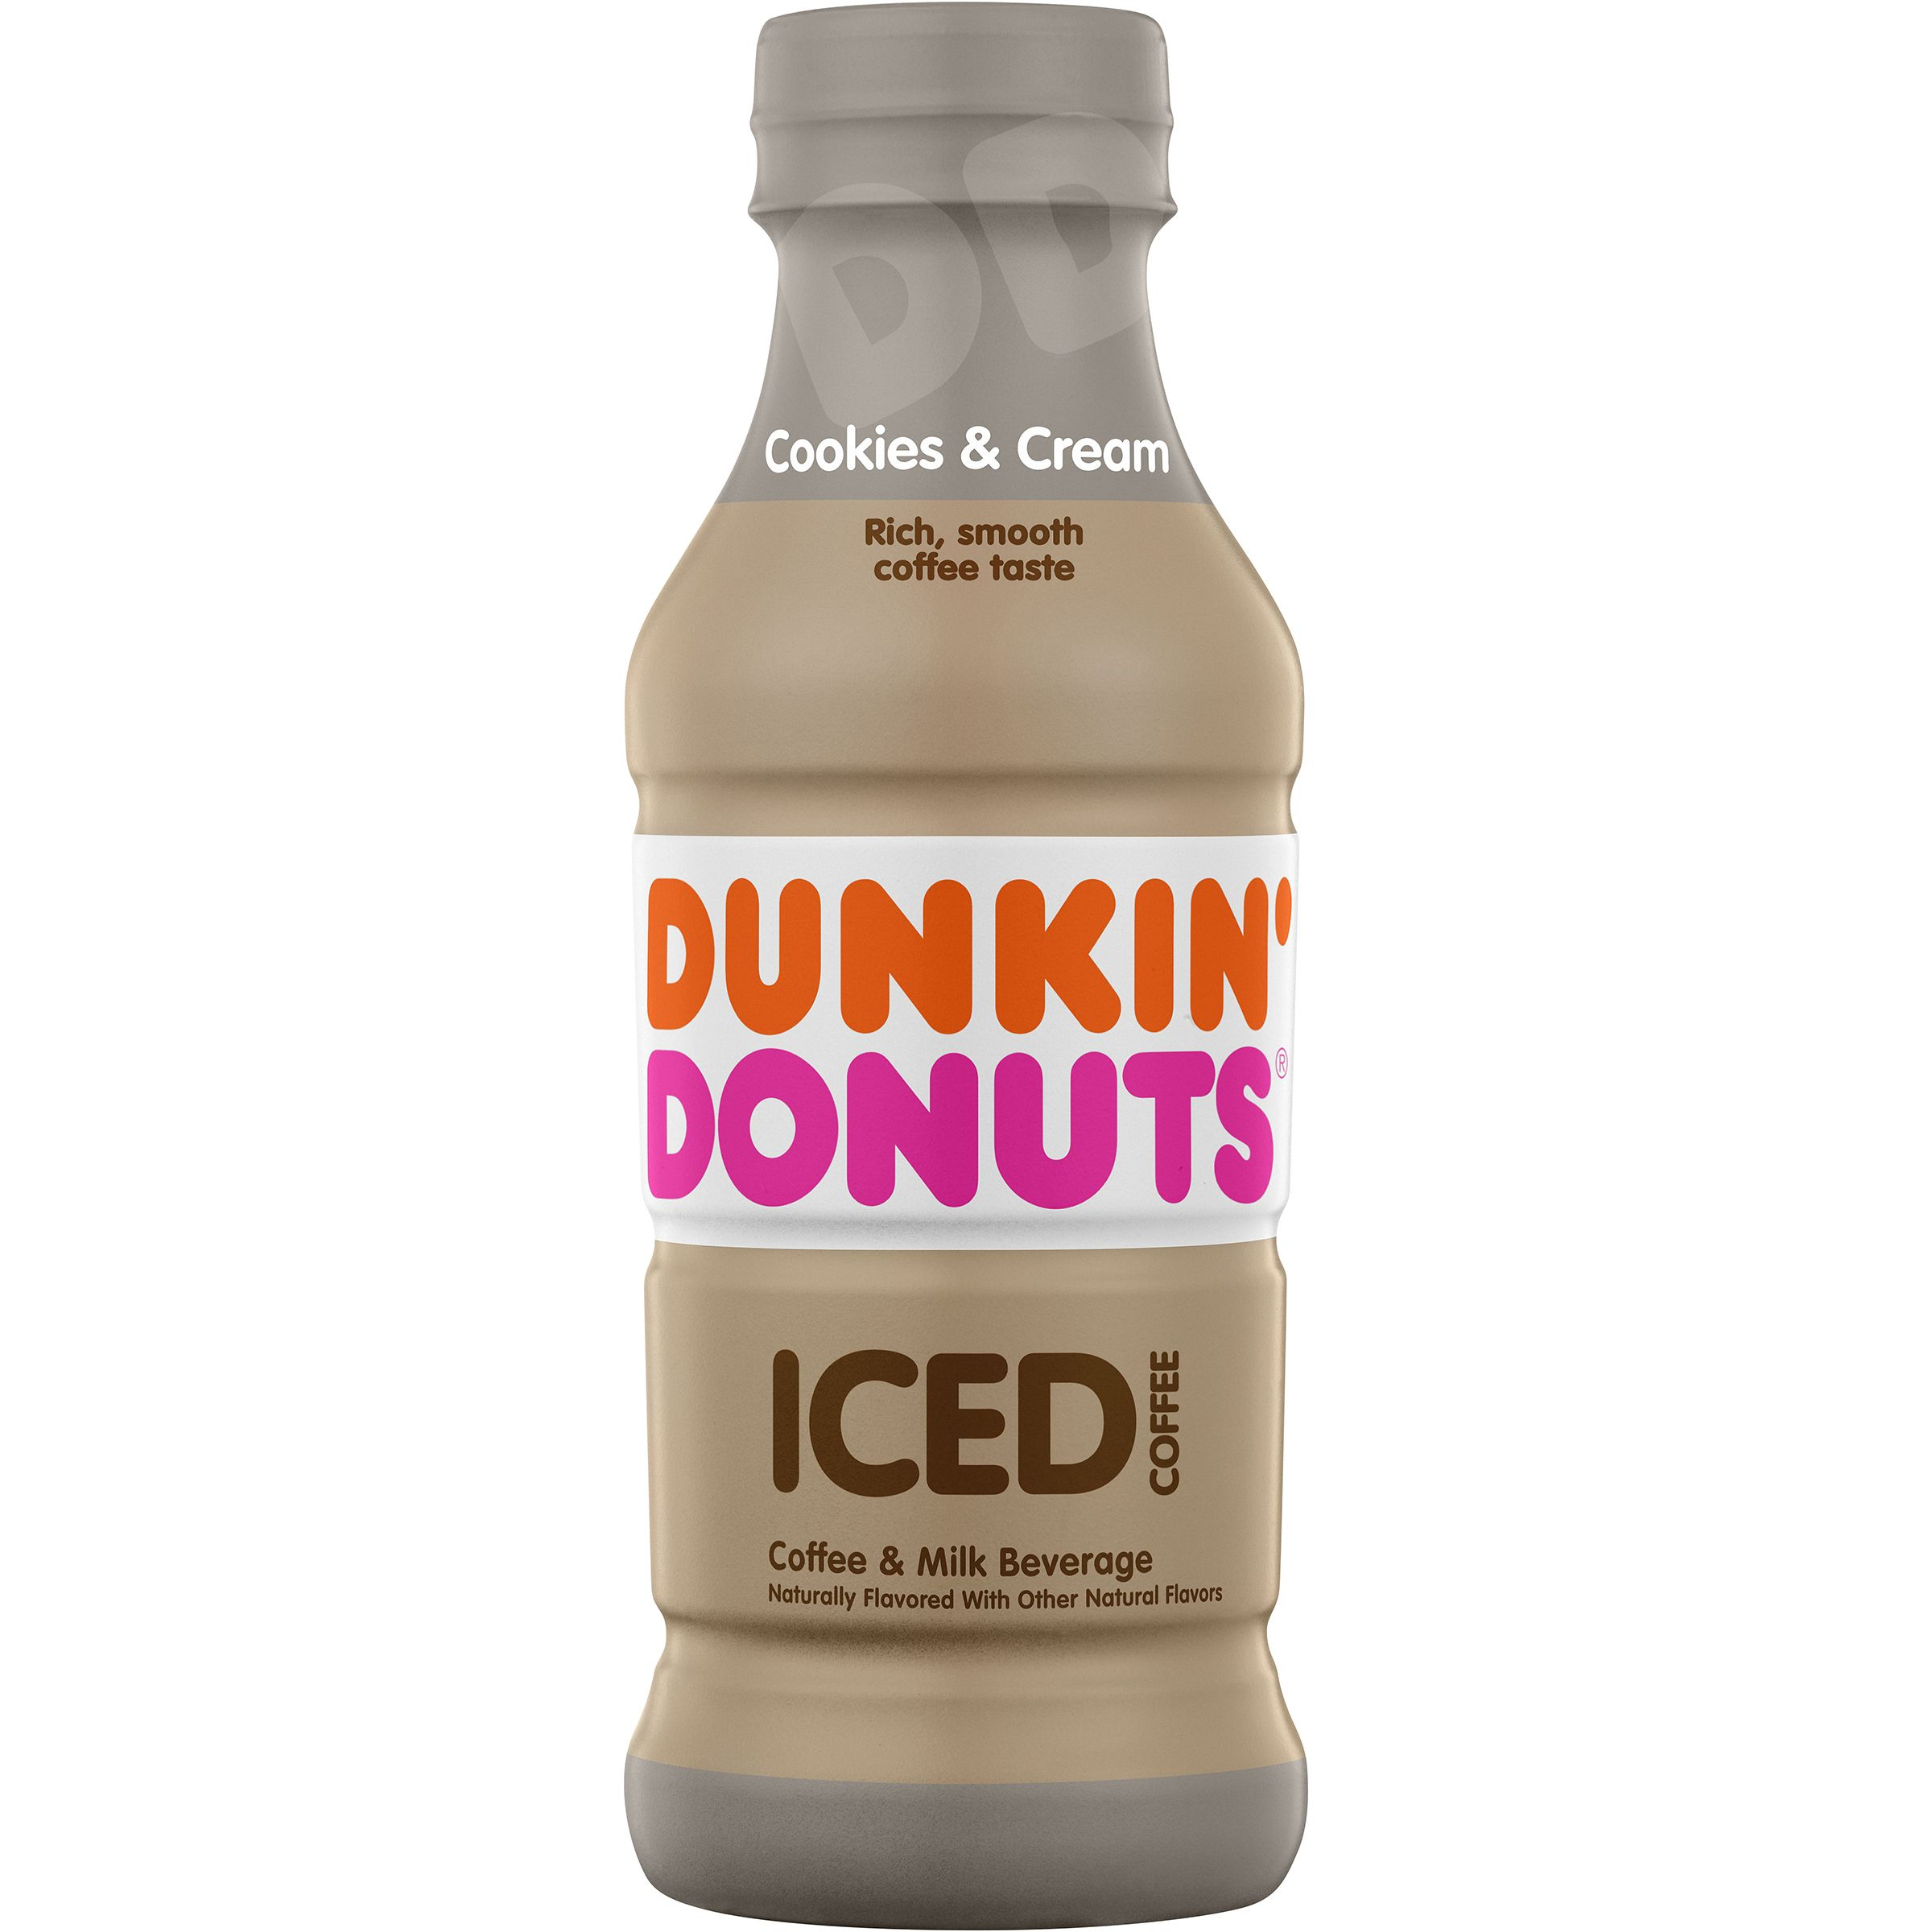 Dunkin Donuts Cookies And Cream Iced Coffee Nutrition in